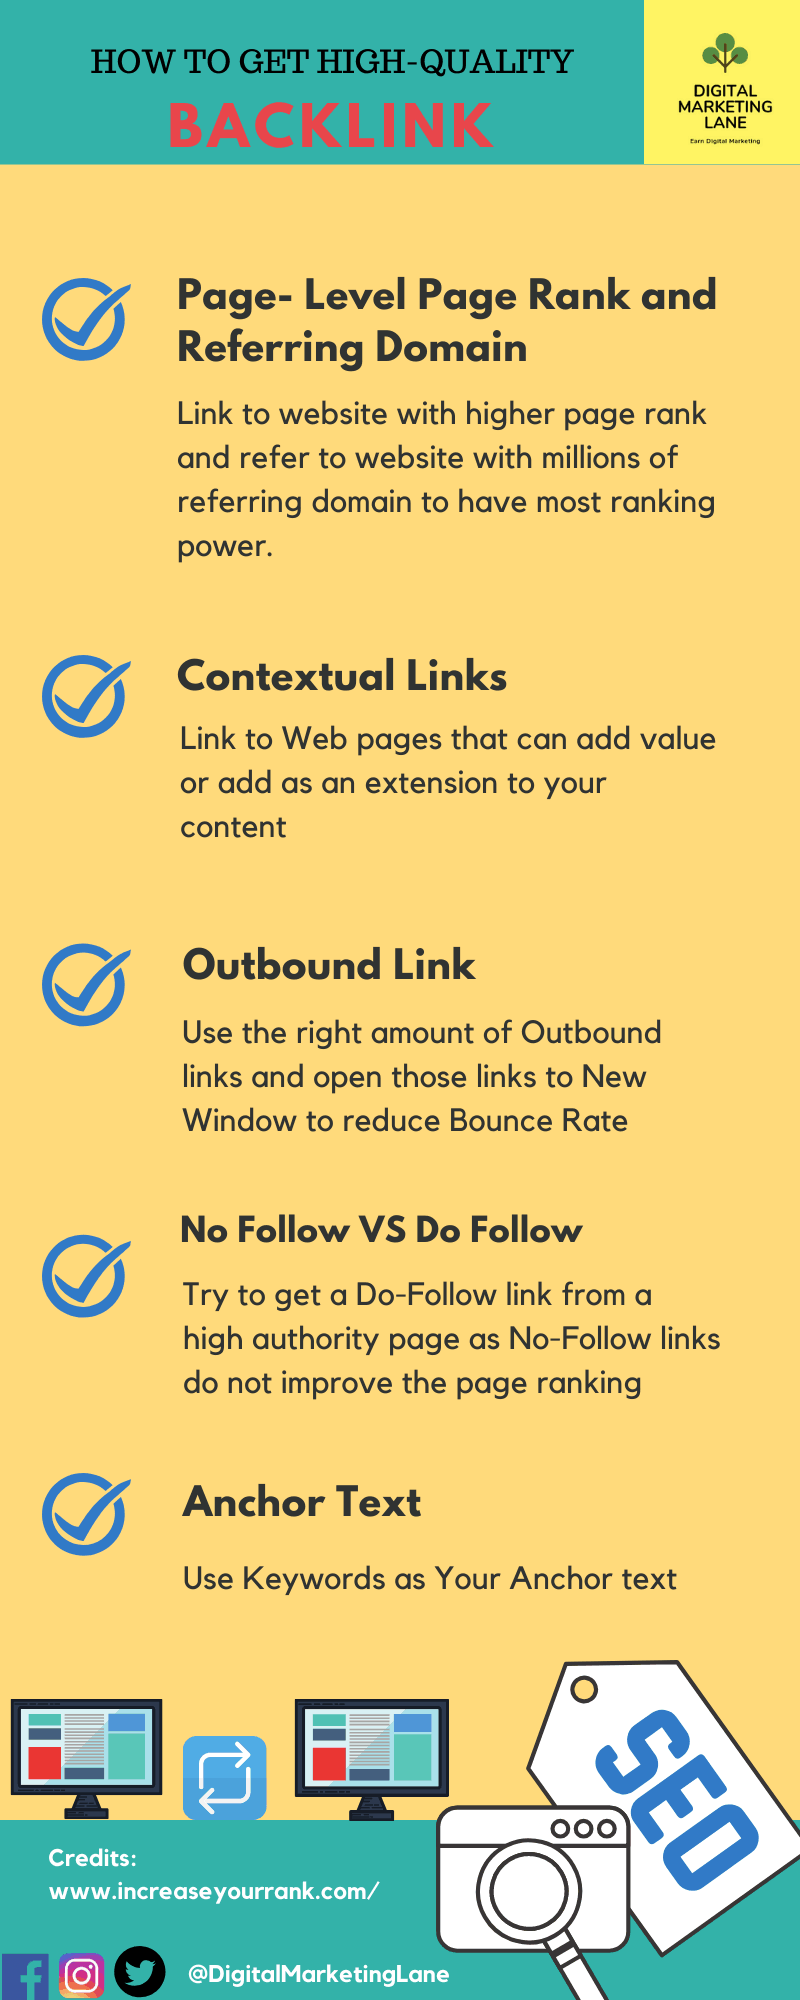 How to Get High-Quality Backlinks - Link Building strategy